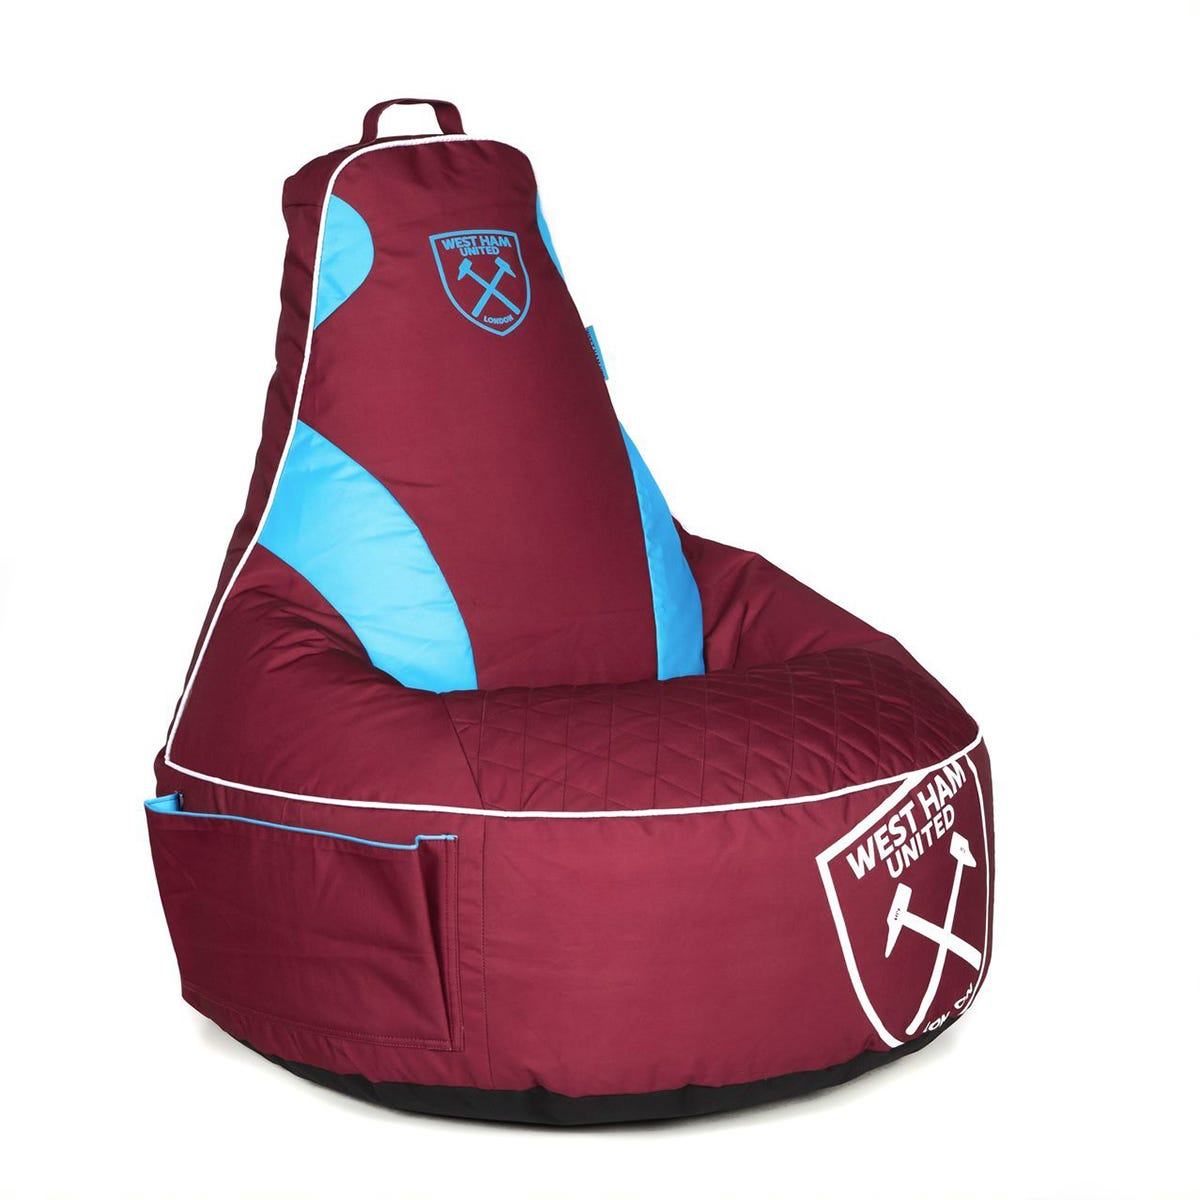 Province 5 West Ham FC Big Chill Gaming Bean Bag Chair